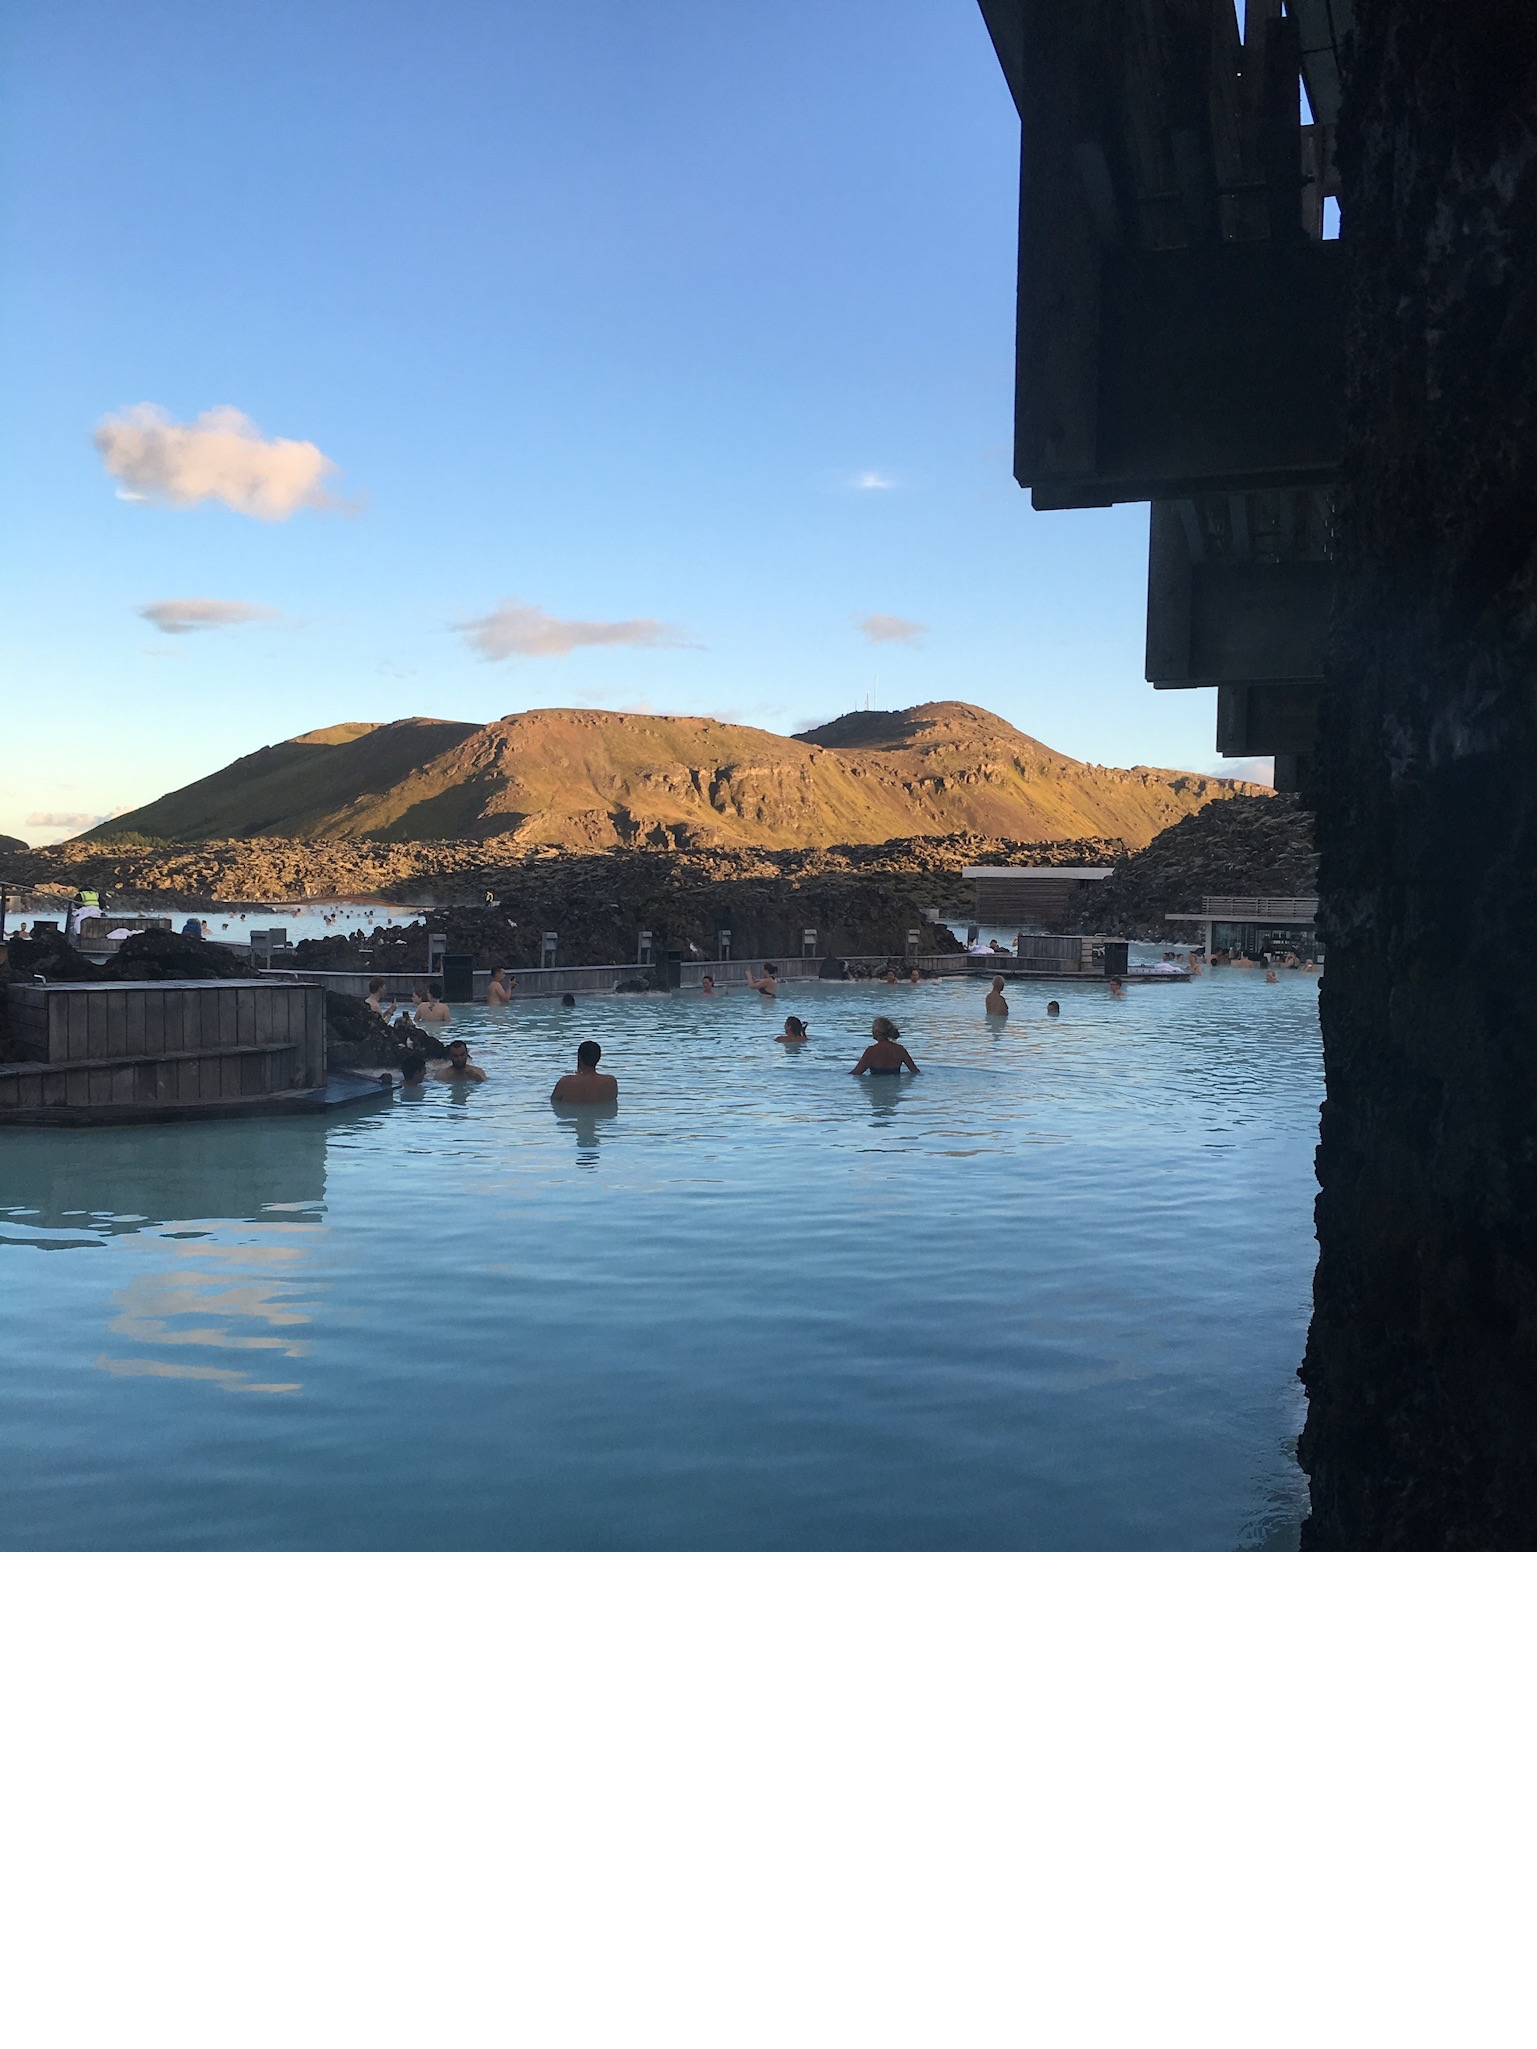 If you've ever a chance to soak and relax at the Blue Lagoon, take full advantage. Remember to always book ahead as they will only see you based off the time slot you have, trust us we made the mistake the first day.